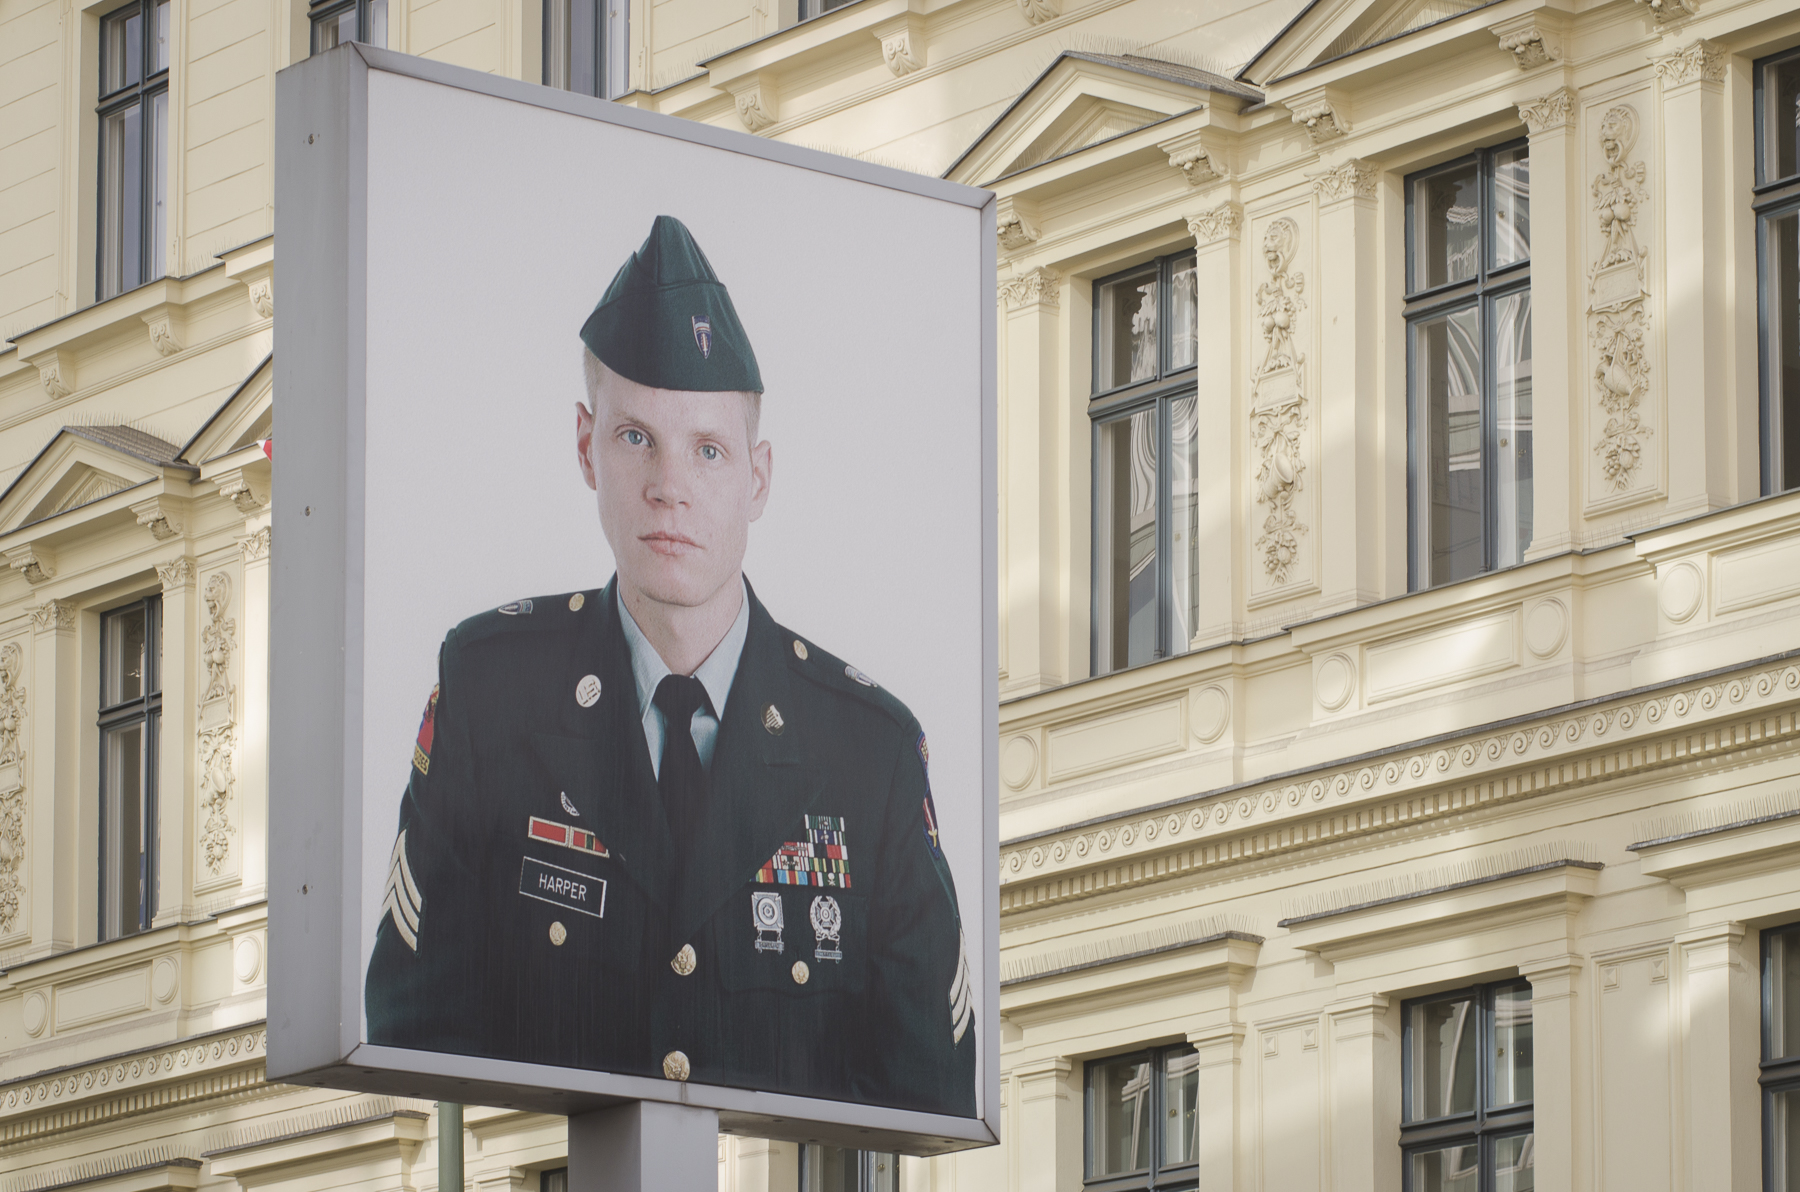 American SOLDIER, Checkpoint Charlie Photography : Alexander J.E. Bradley - Nikon D7000 - 80-200mm f/2.8 @ 80mm - f/11 - 1/125 - ISO 200